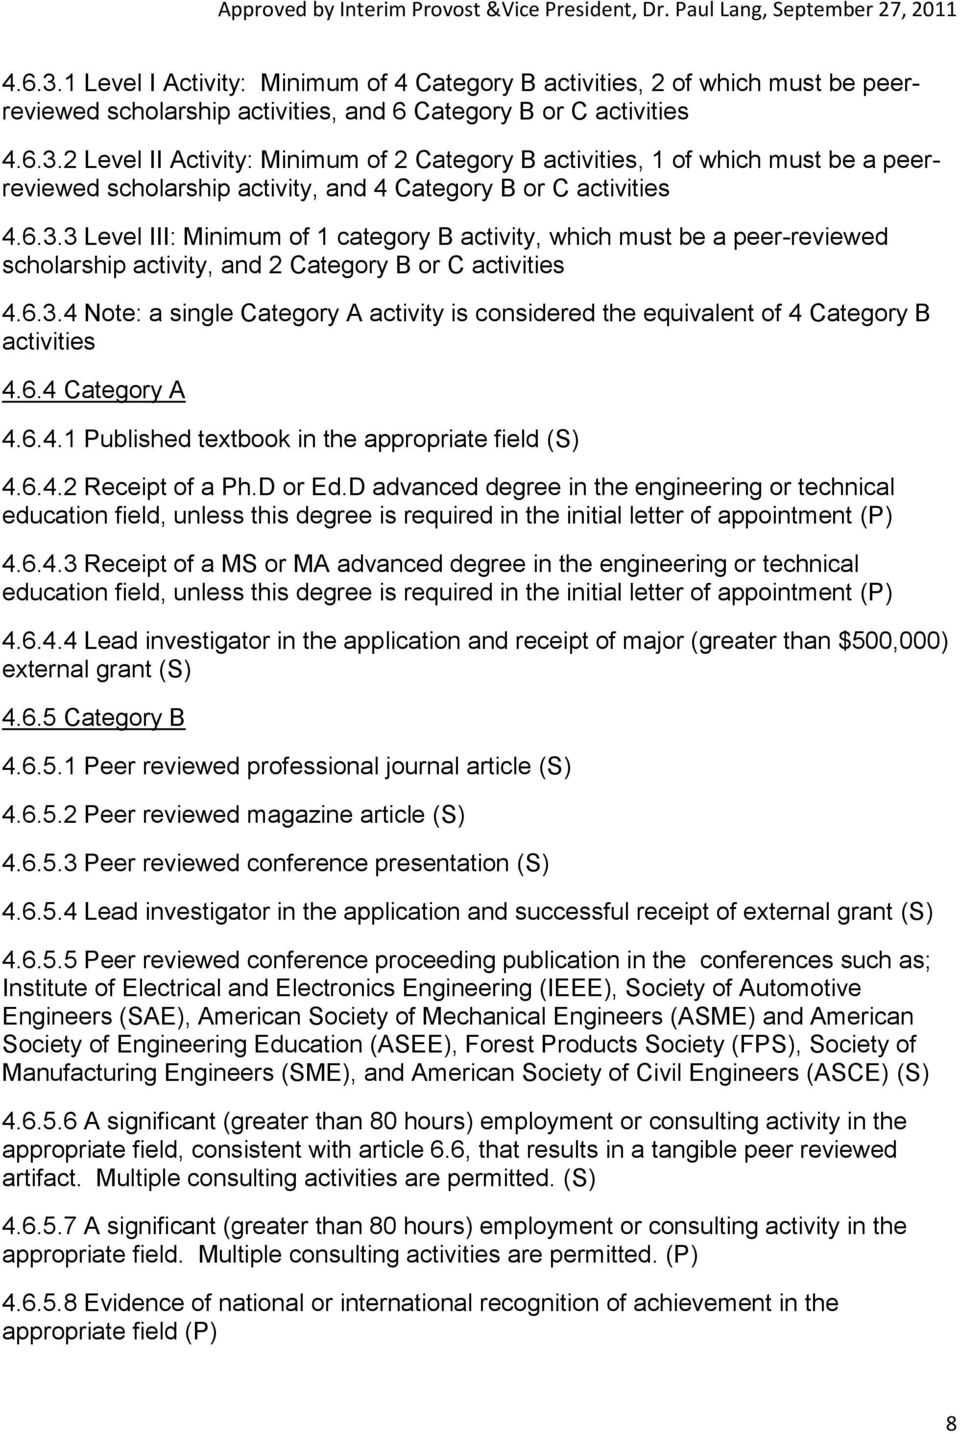 6.4 Category A 4.6.4.1 Published textbook in the appropriate field (S) 4.6.4.2 Receipt of a Ph.D or Ed.